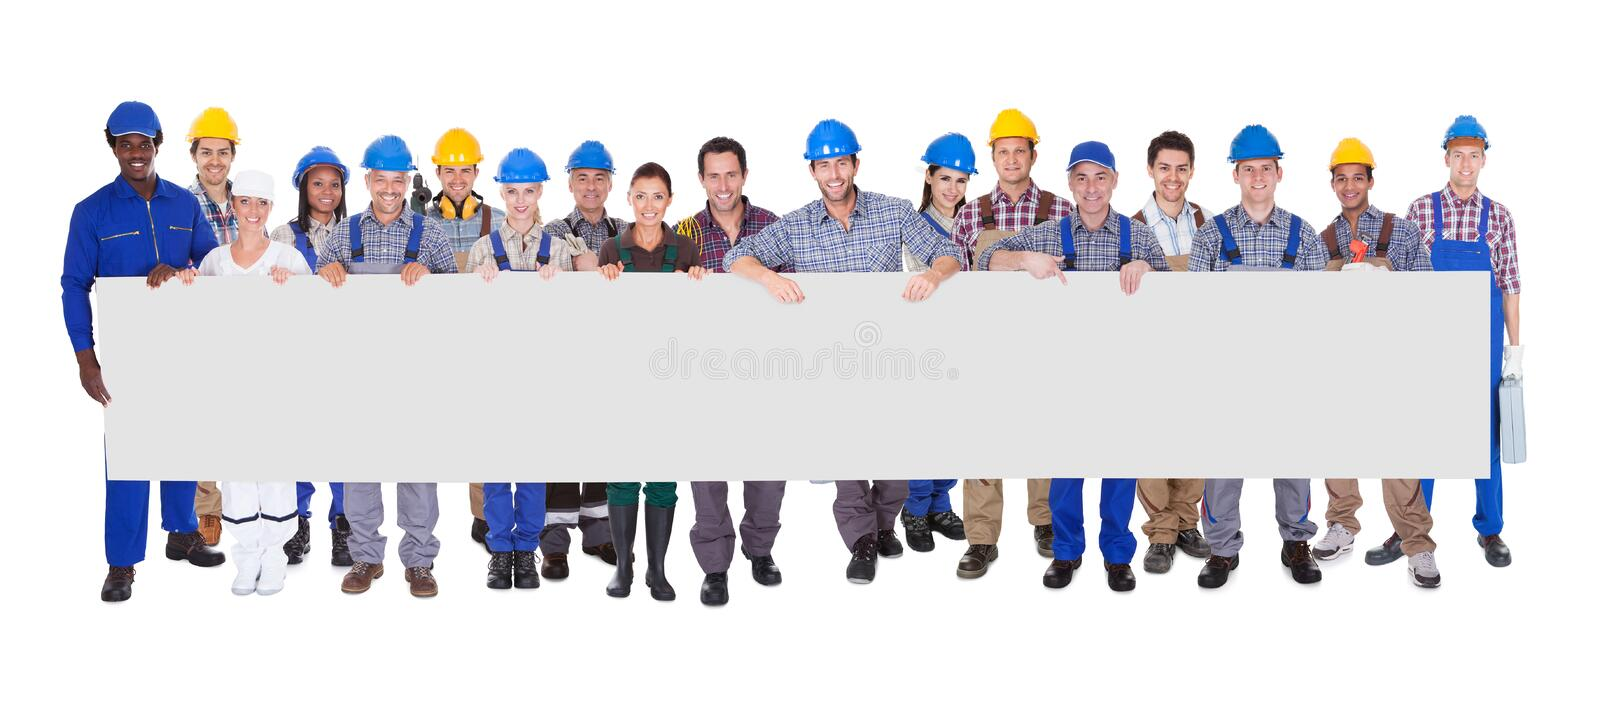 Group of construction workers with placard stock image